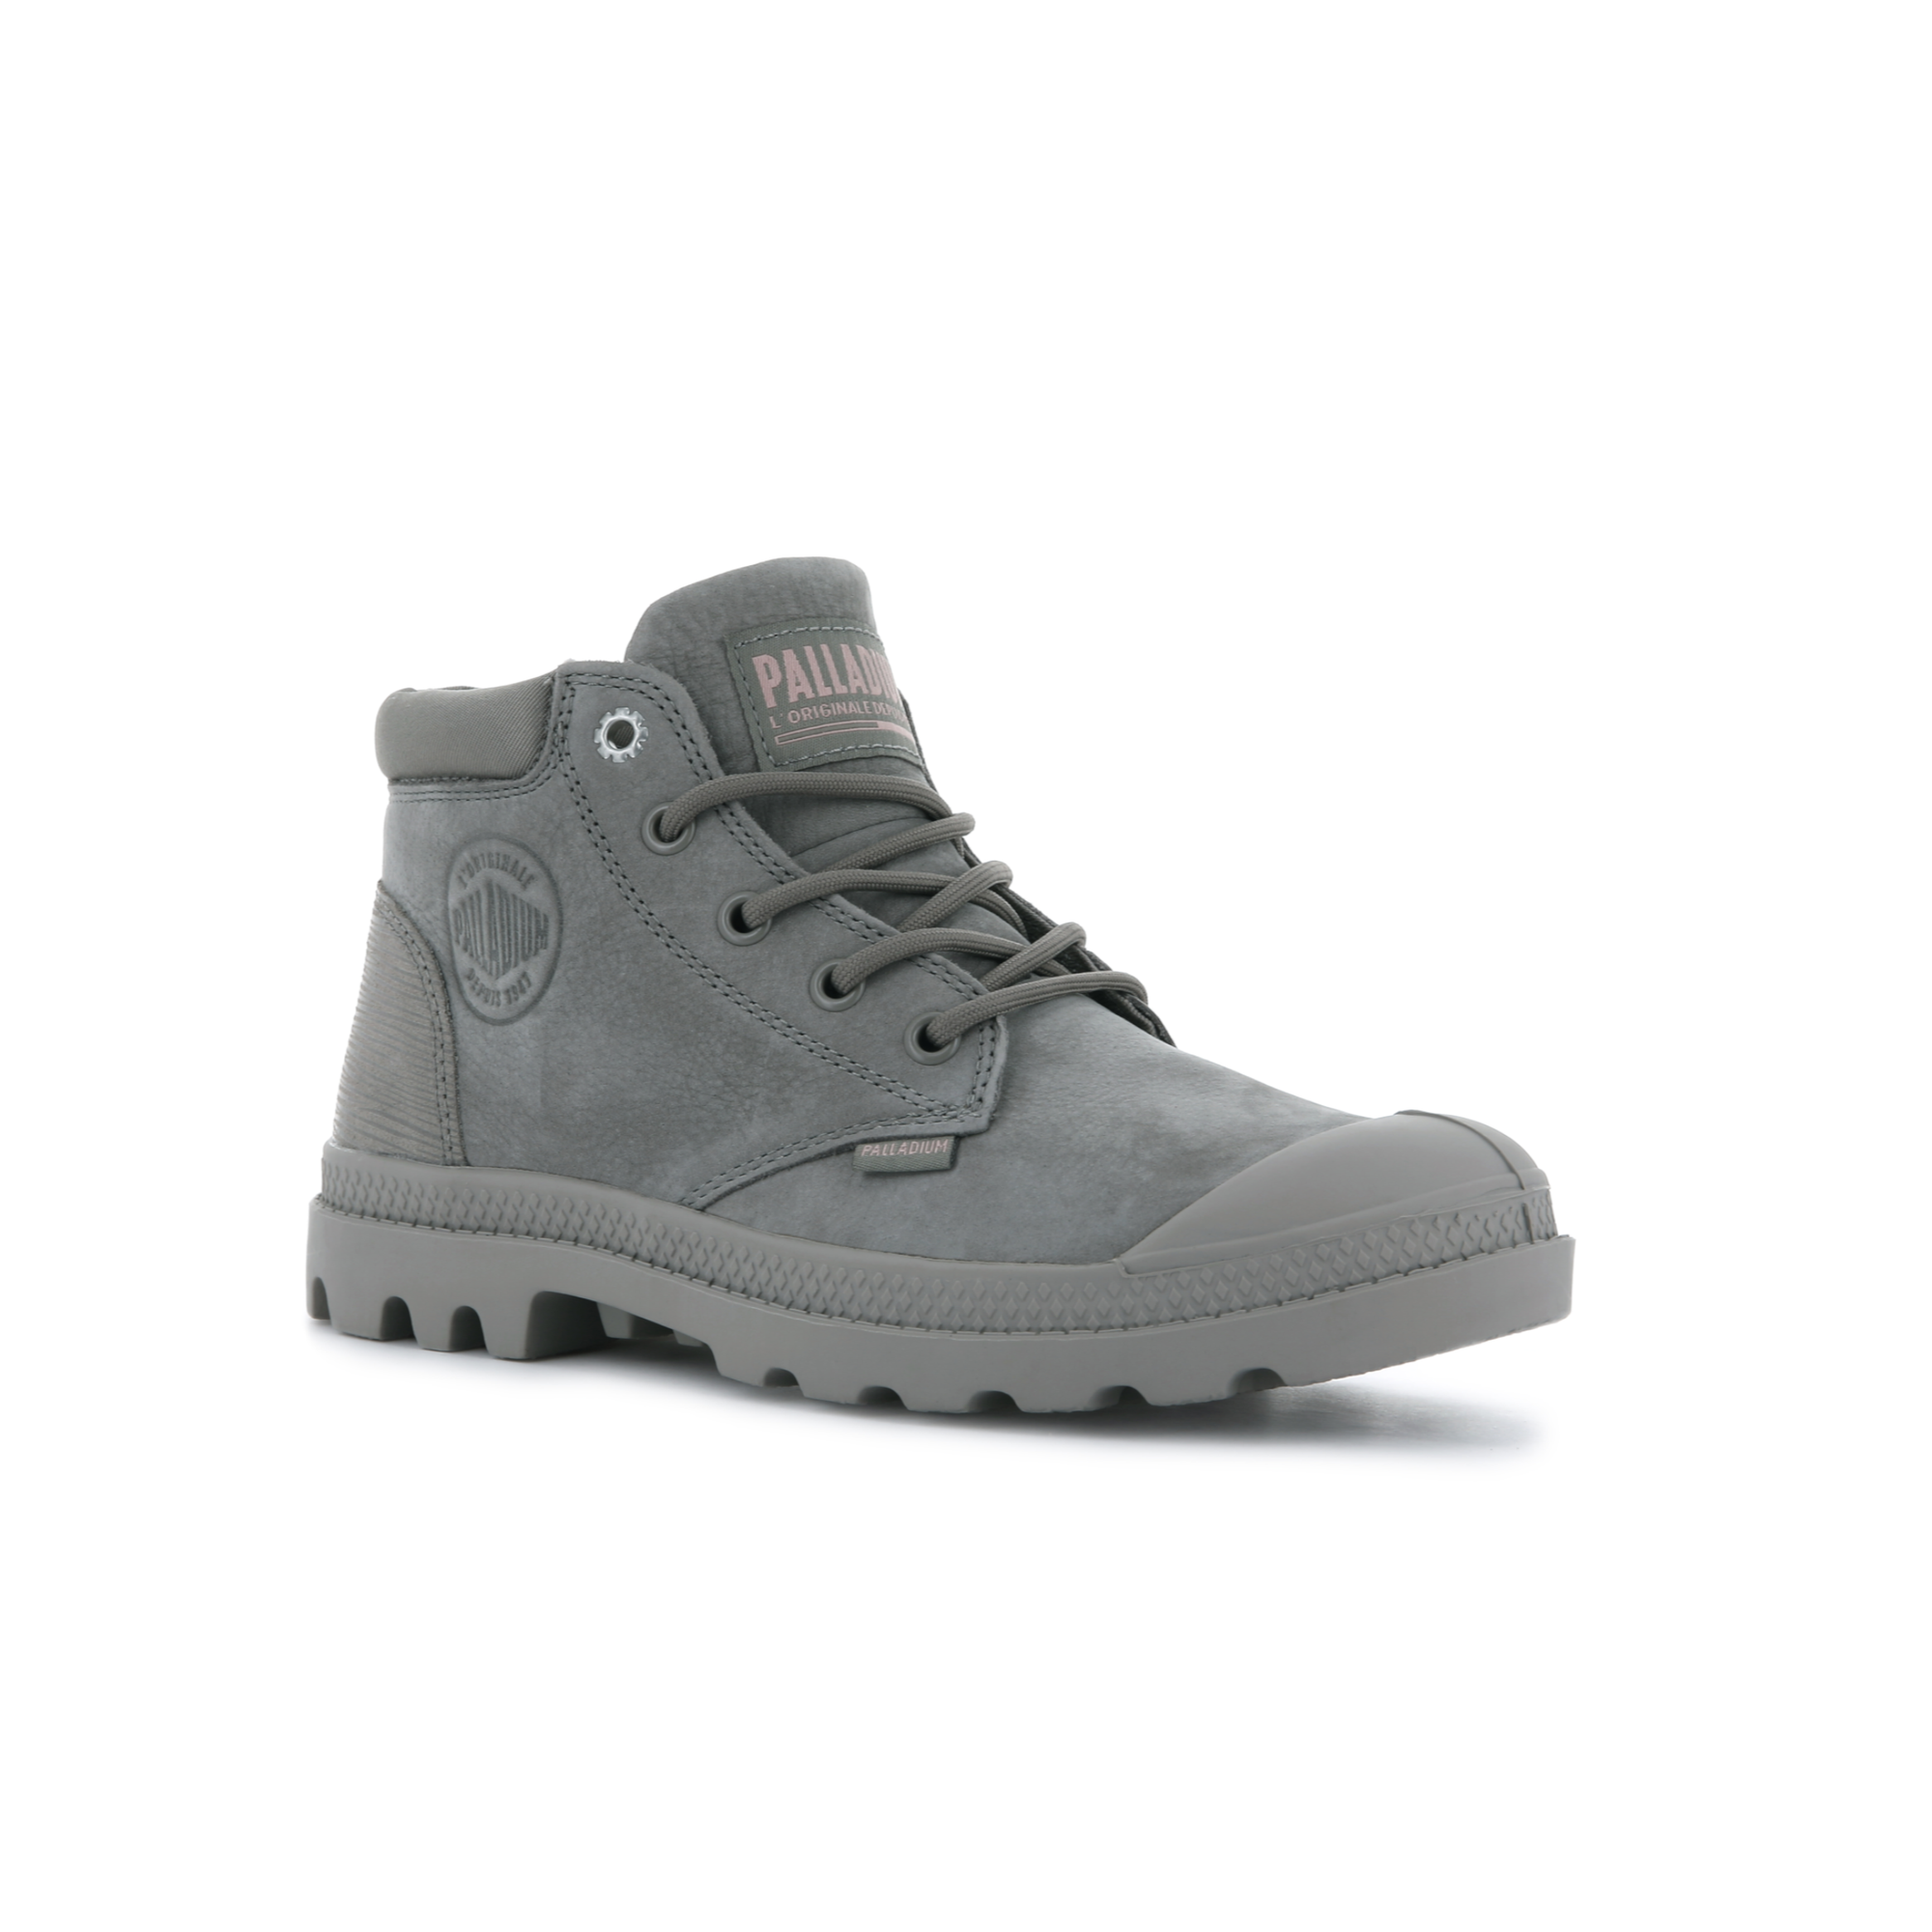 Mono grey leather ankle height combat boot